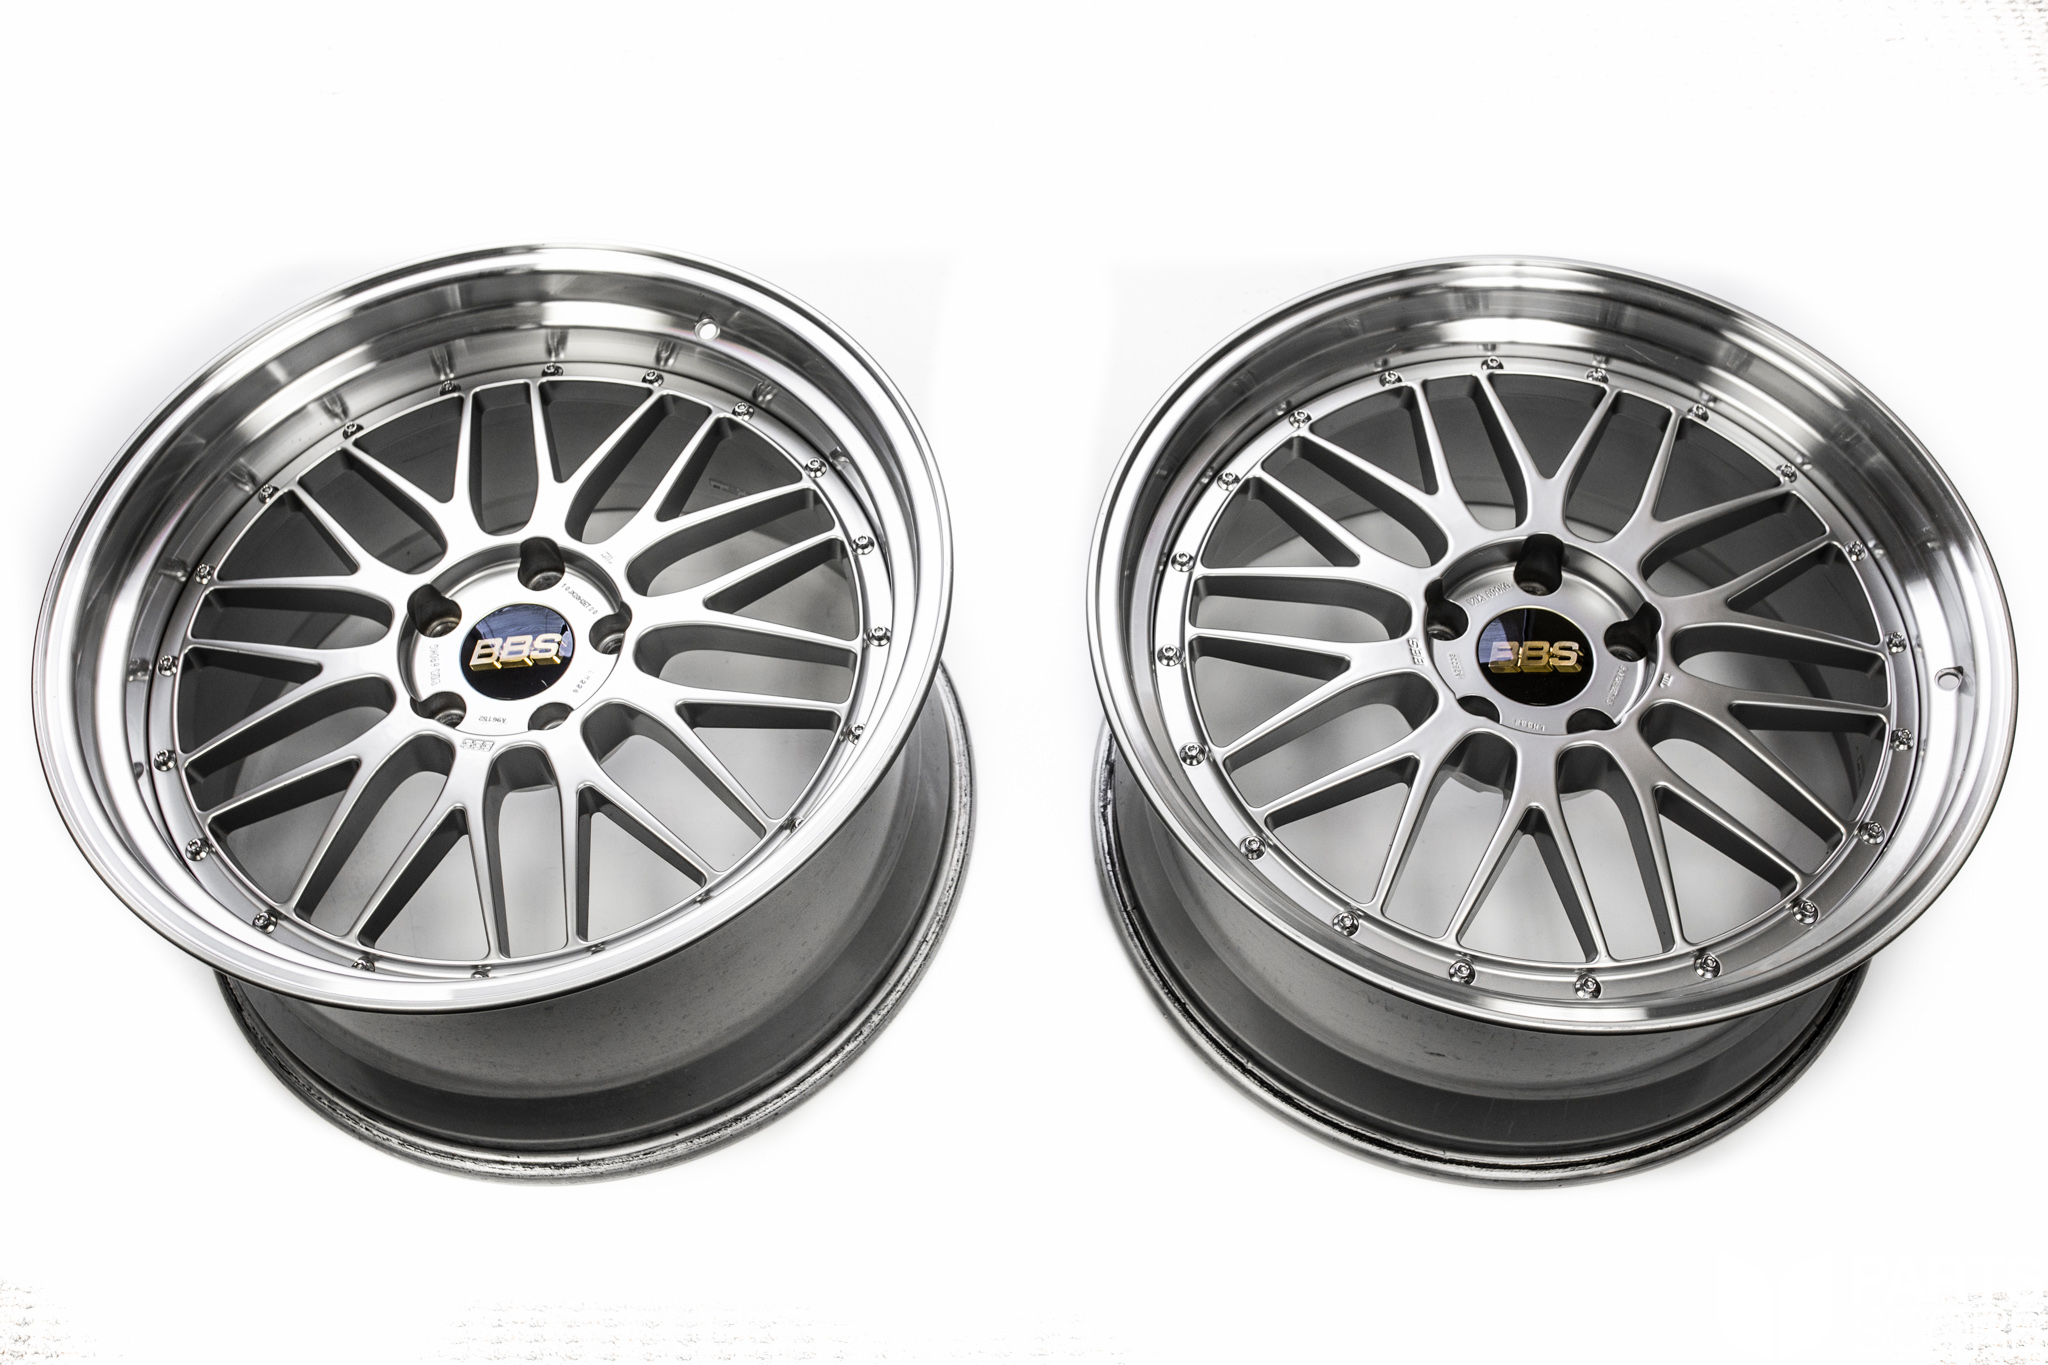 bbs lm, Parts score, bmw, m3, bmw m3, e92m3, e92, e90, e93, e90m3, bbs, bbslm, bad boy sexy, wheels game, wheelgame, bbs wheels, bbs usa, made in japan, bmw individual, racecar, motorsport, stance, static, bbs wheels, cargram, cargramm, bmwgram, bmw m, bmw m performance, bimmer, bmw m power, m power, race car, parts score, partsscore, peoria, phoenix, scottsdale, scottsdale az, tempe, titanium